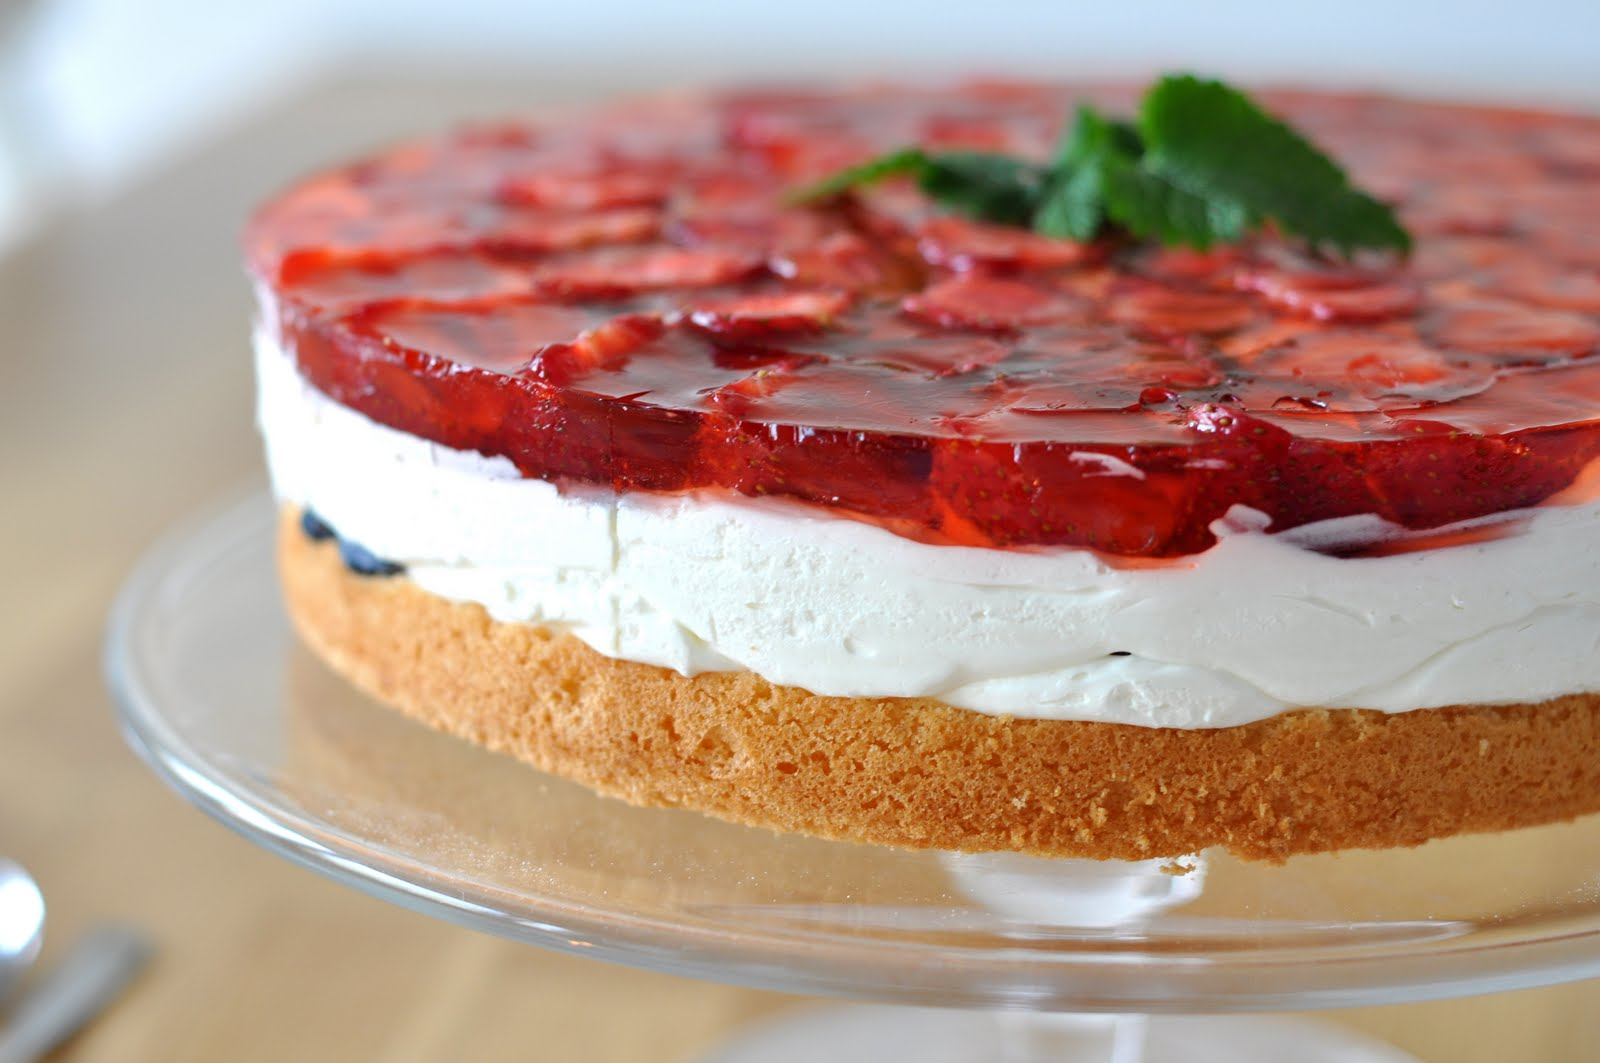 agata's kitchen: Strawberry cream layer cake